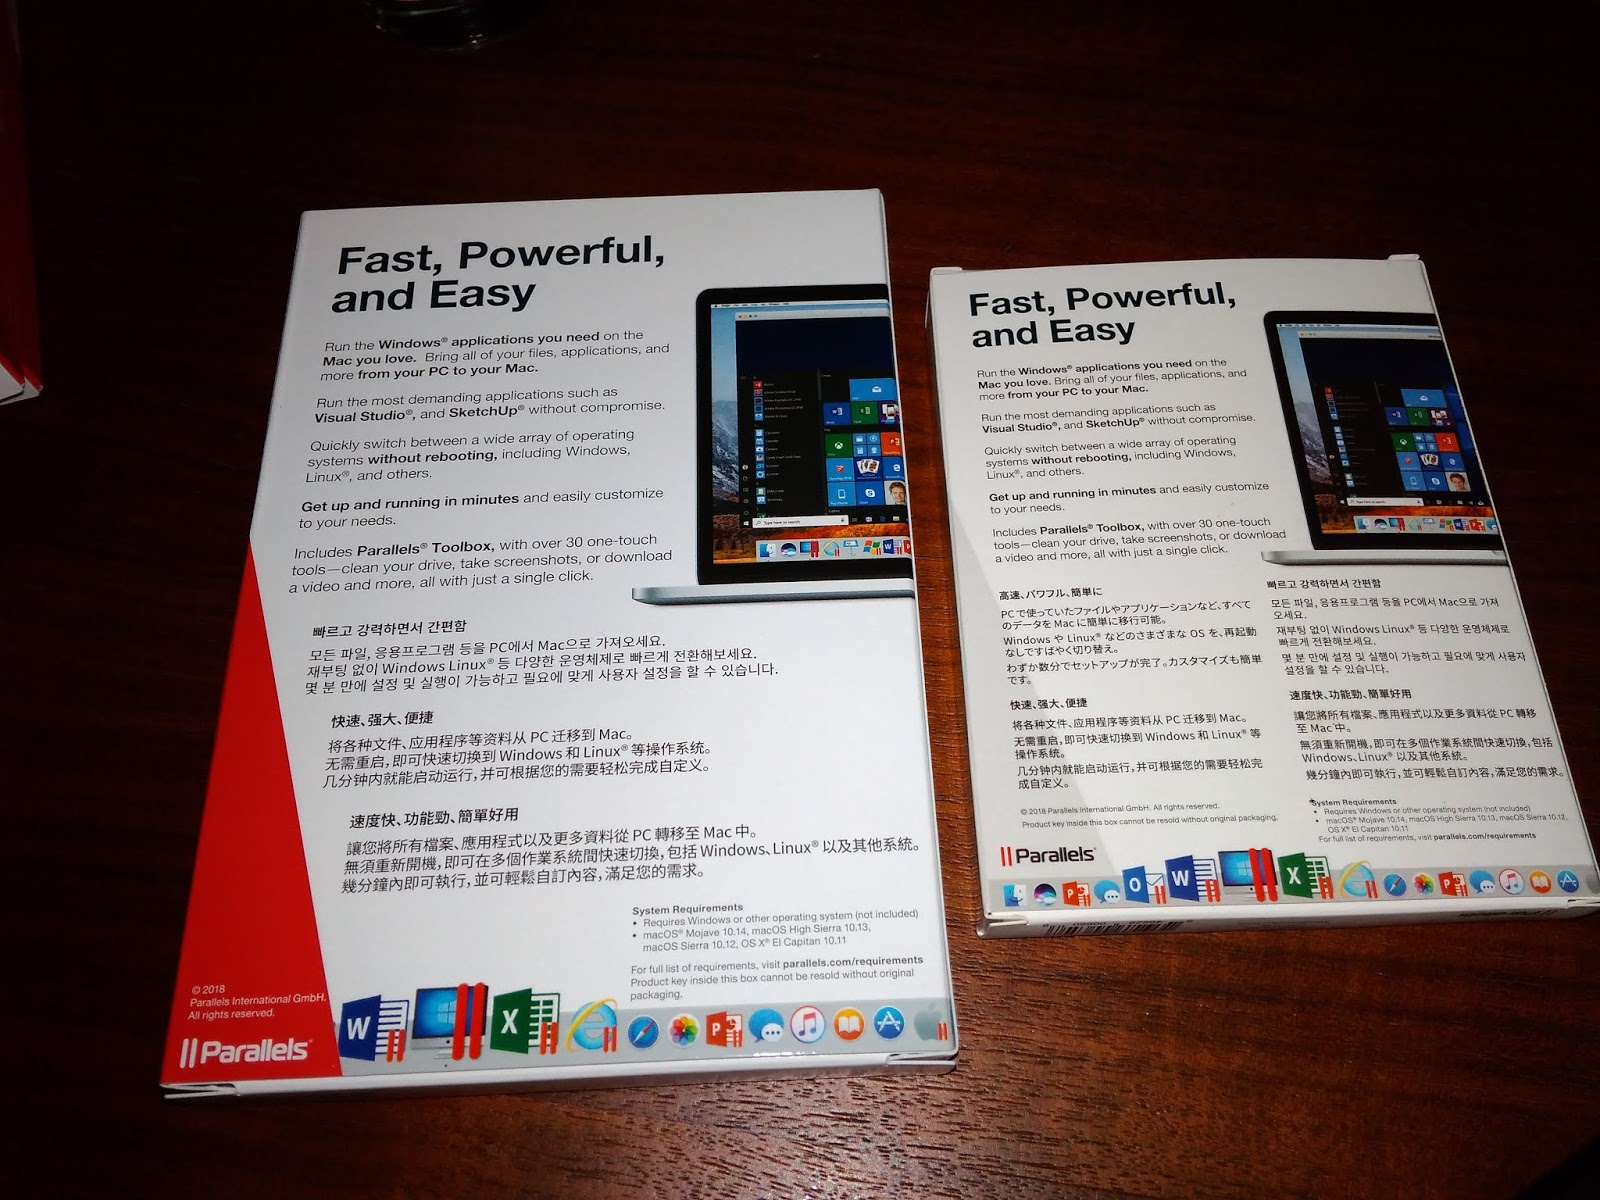 Parallels product key